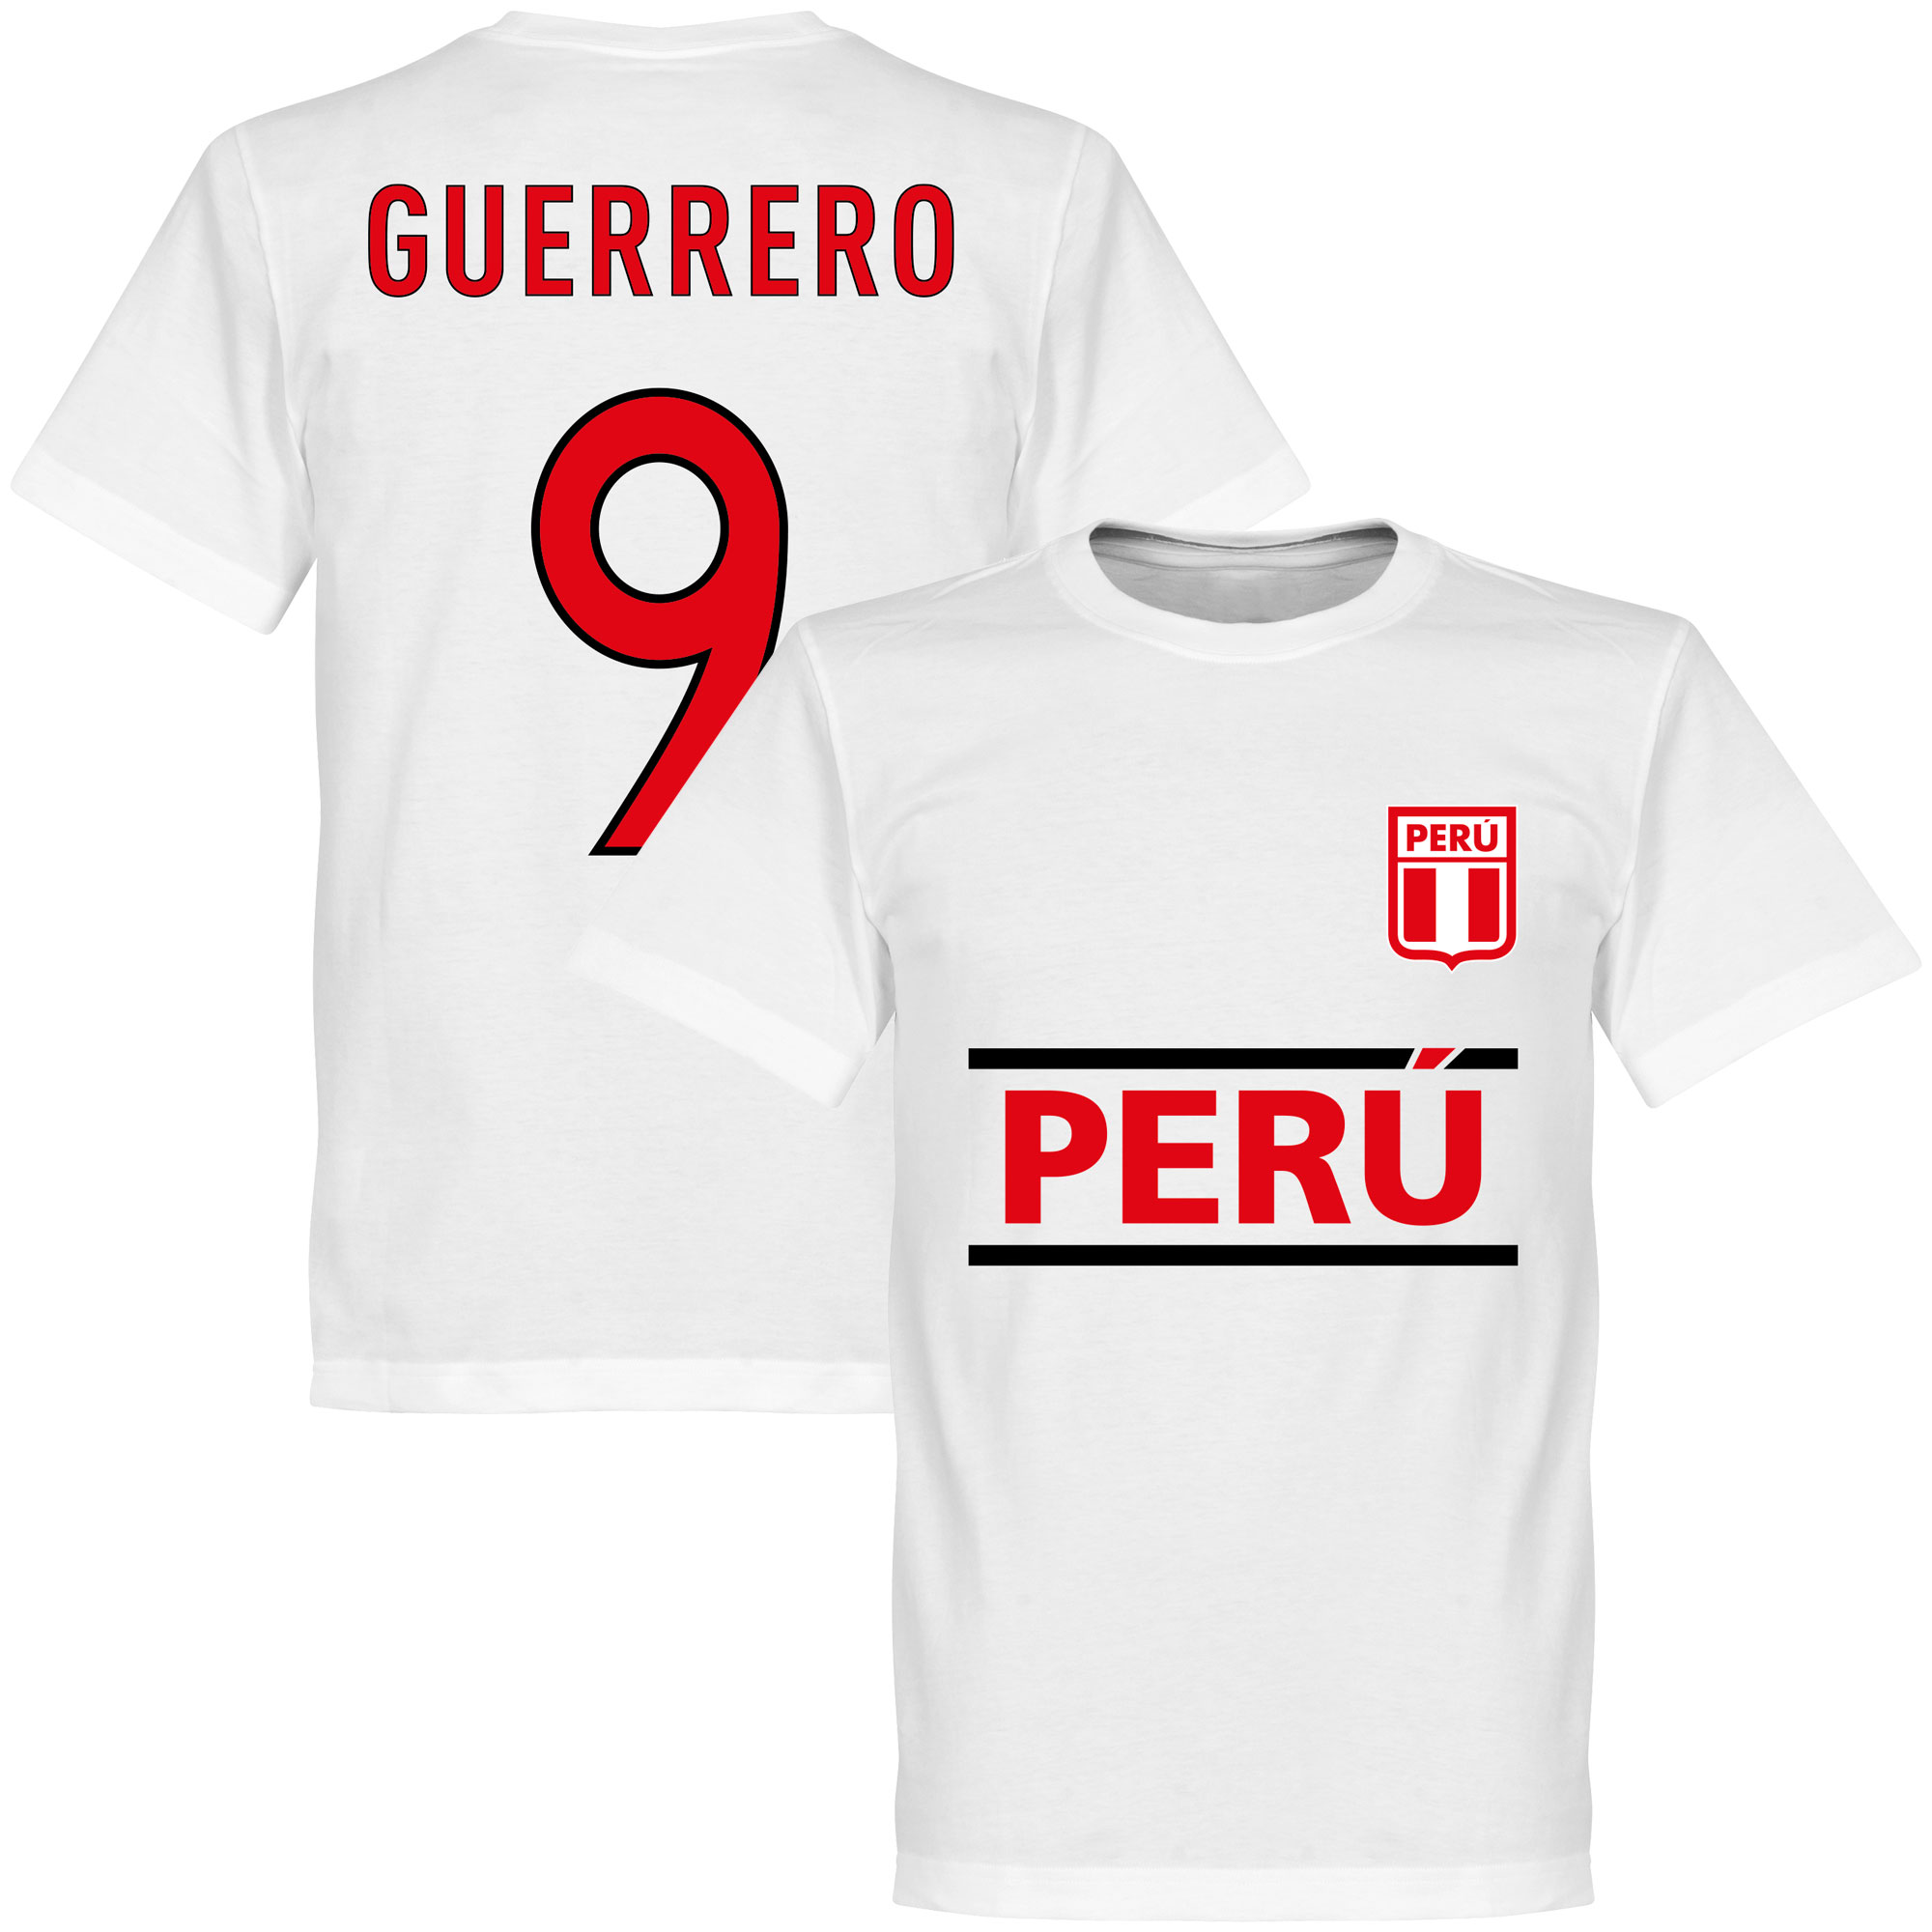 Peru Guerrero 9 Team T-Shirt